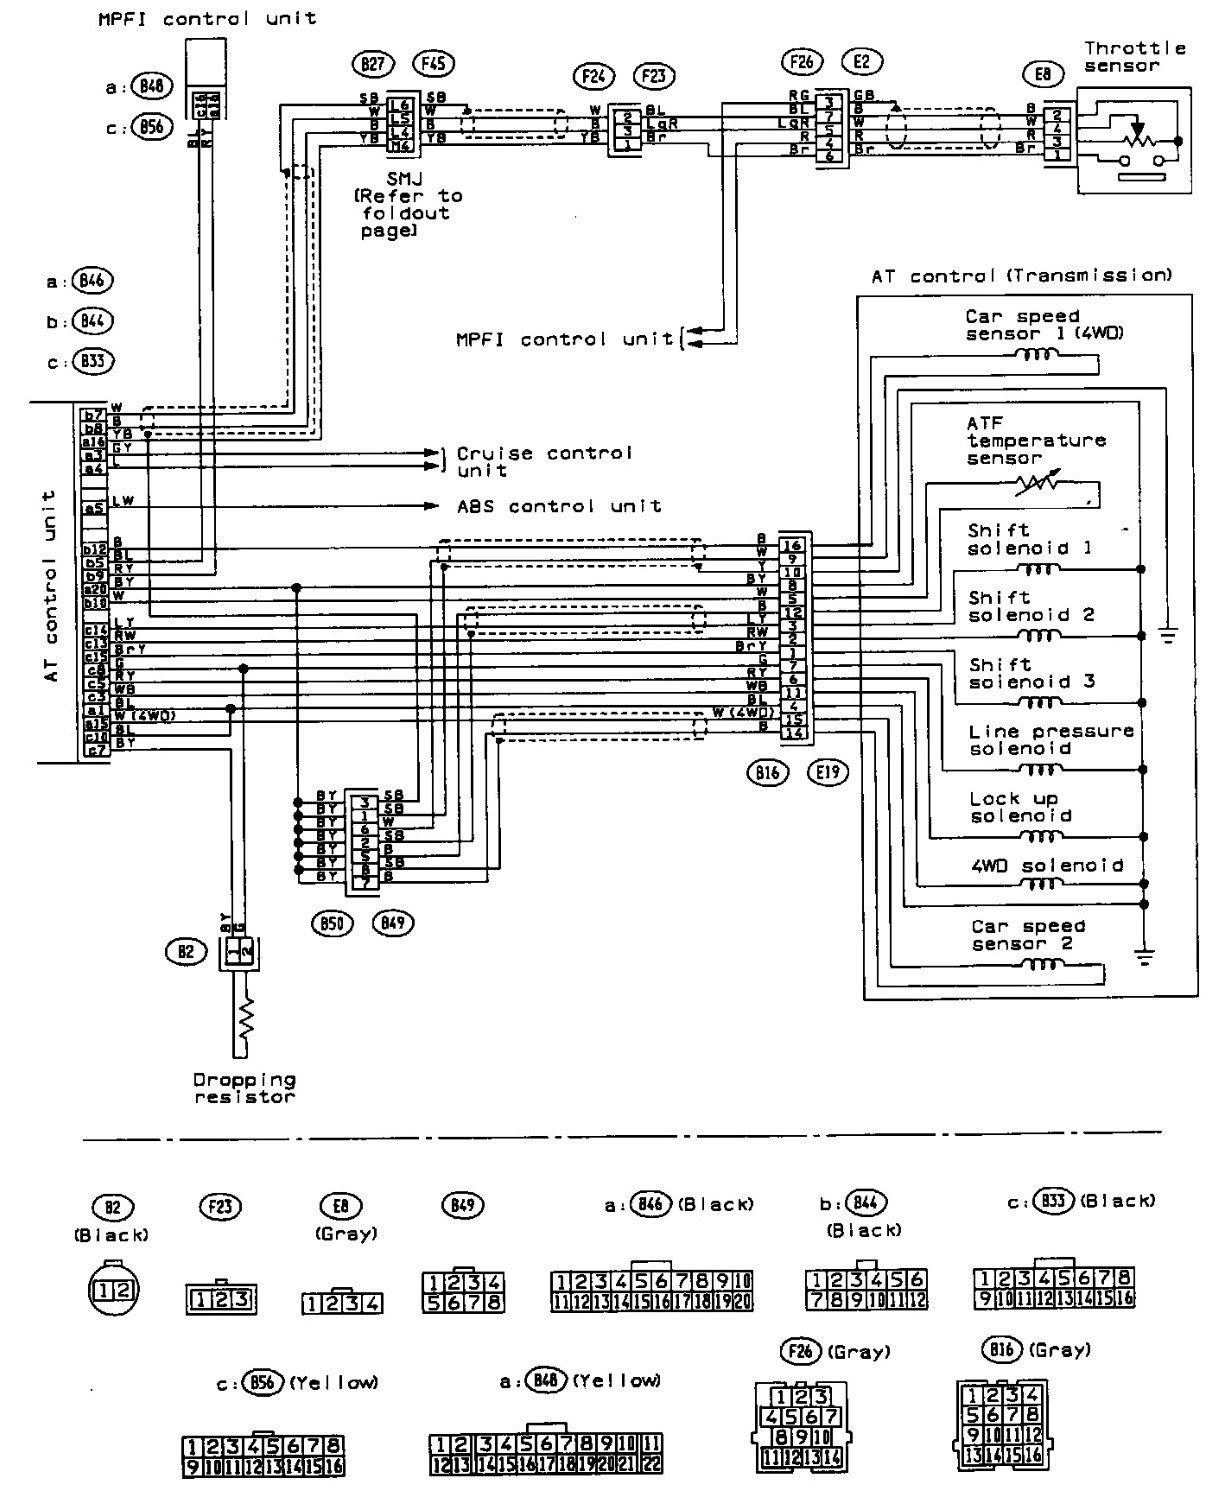 diagram] 98 legacy wiring diagram full version hd quality wiring diagram -  findingsuite.lionsicilia.it  lionsicilia.it